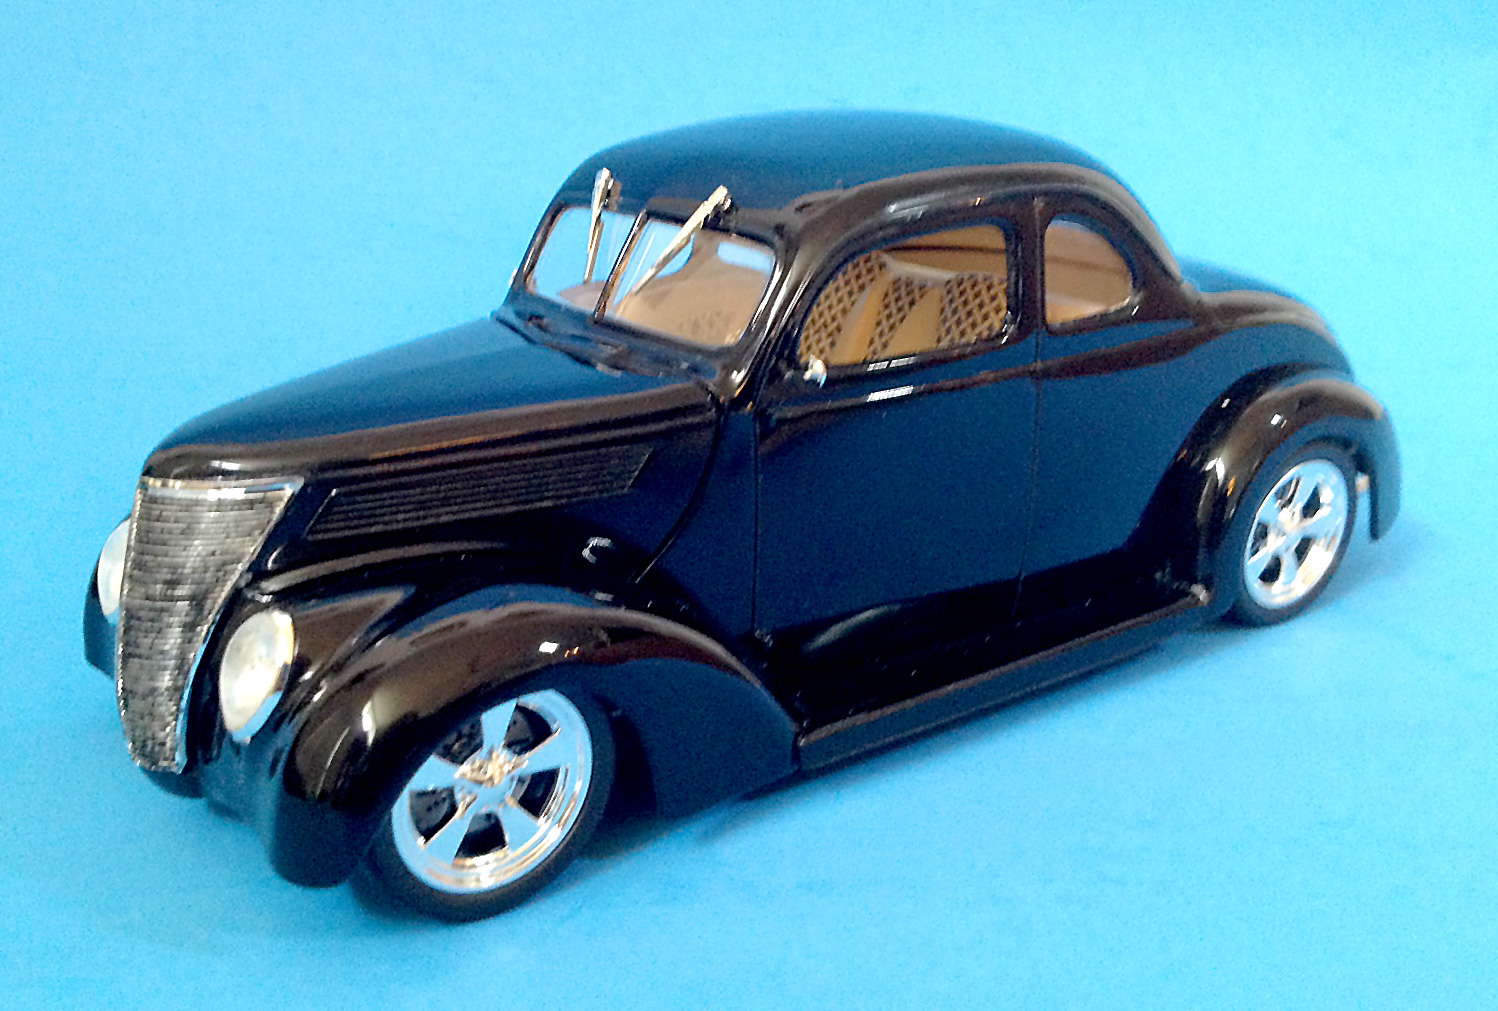 Revell 37 Ford Coupe April 2018 Finescale Modeler Essential